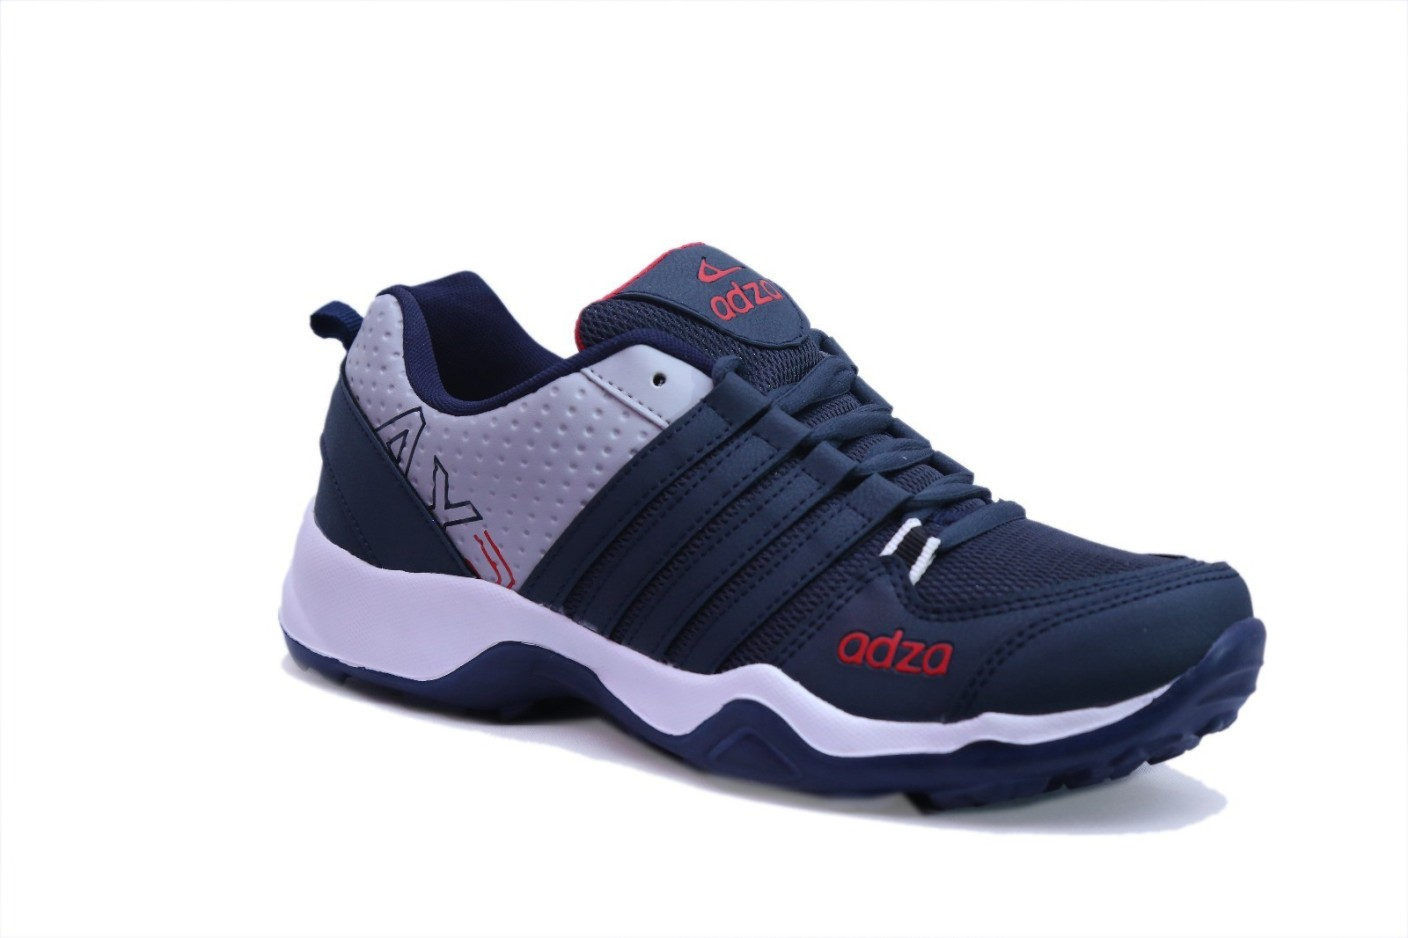 Where Can I Buy Dc Shoes Online